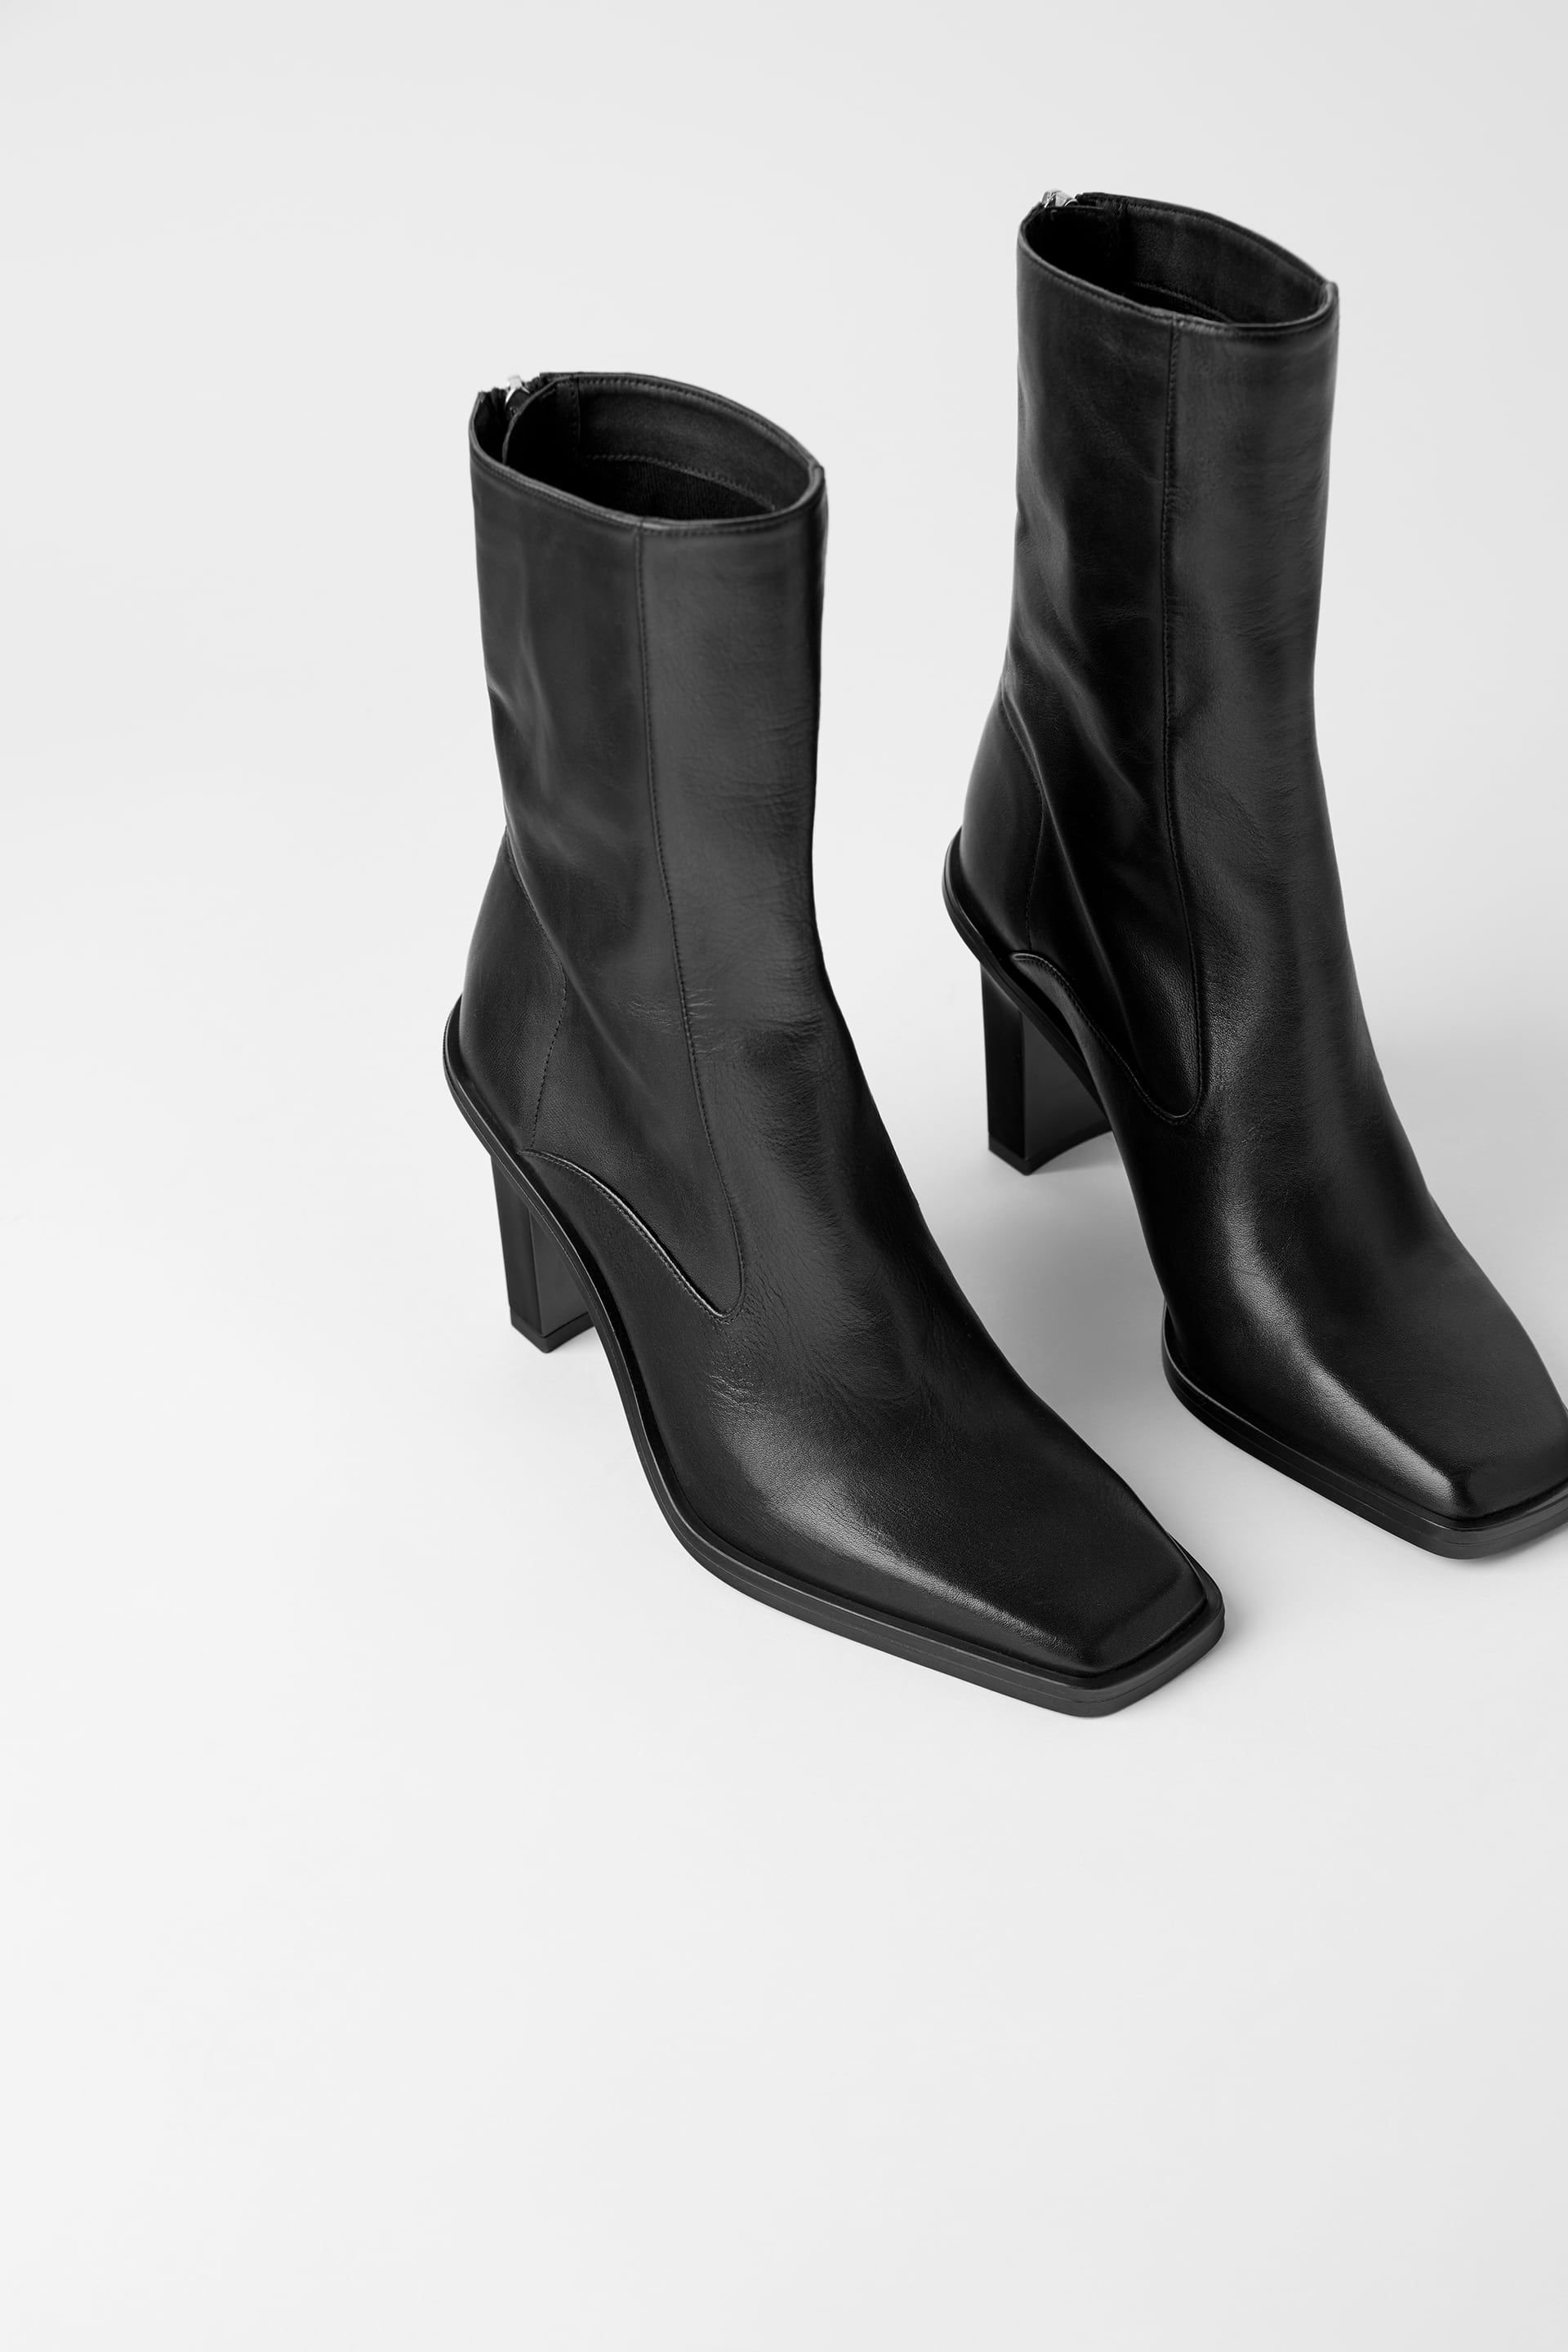 Zara Woman Square Toed High Heel Leather Ankle Boots Boots High Heel Boots Ankle Square Toe Boots